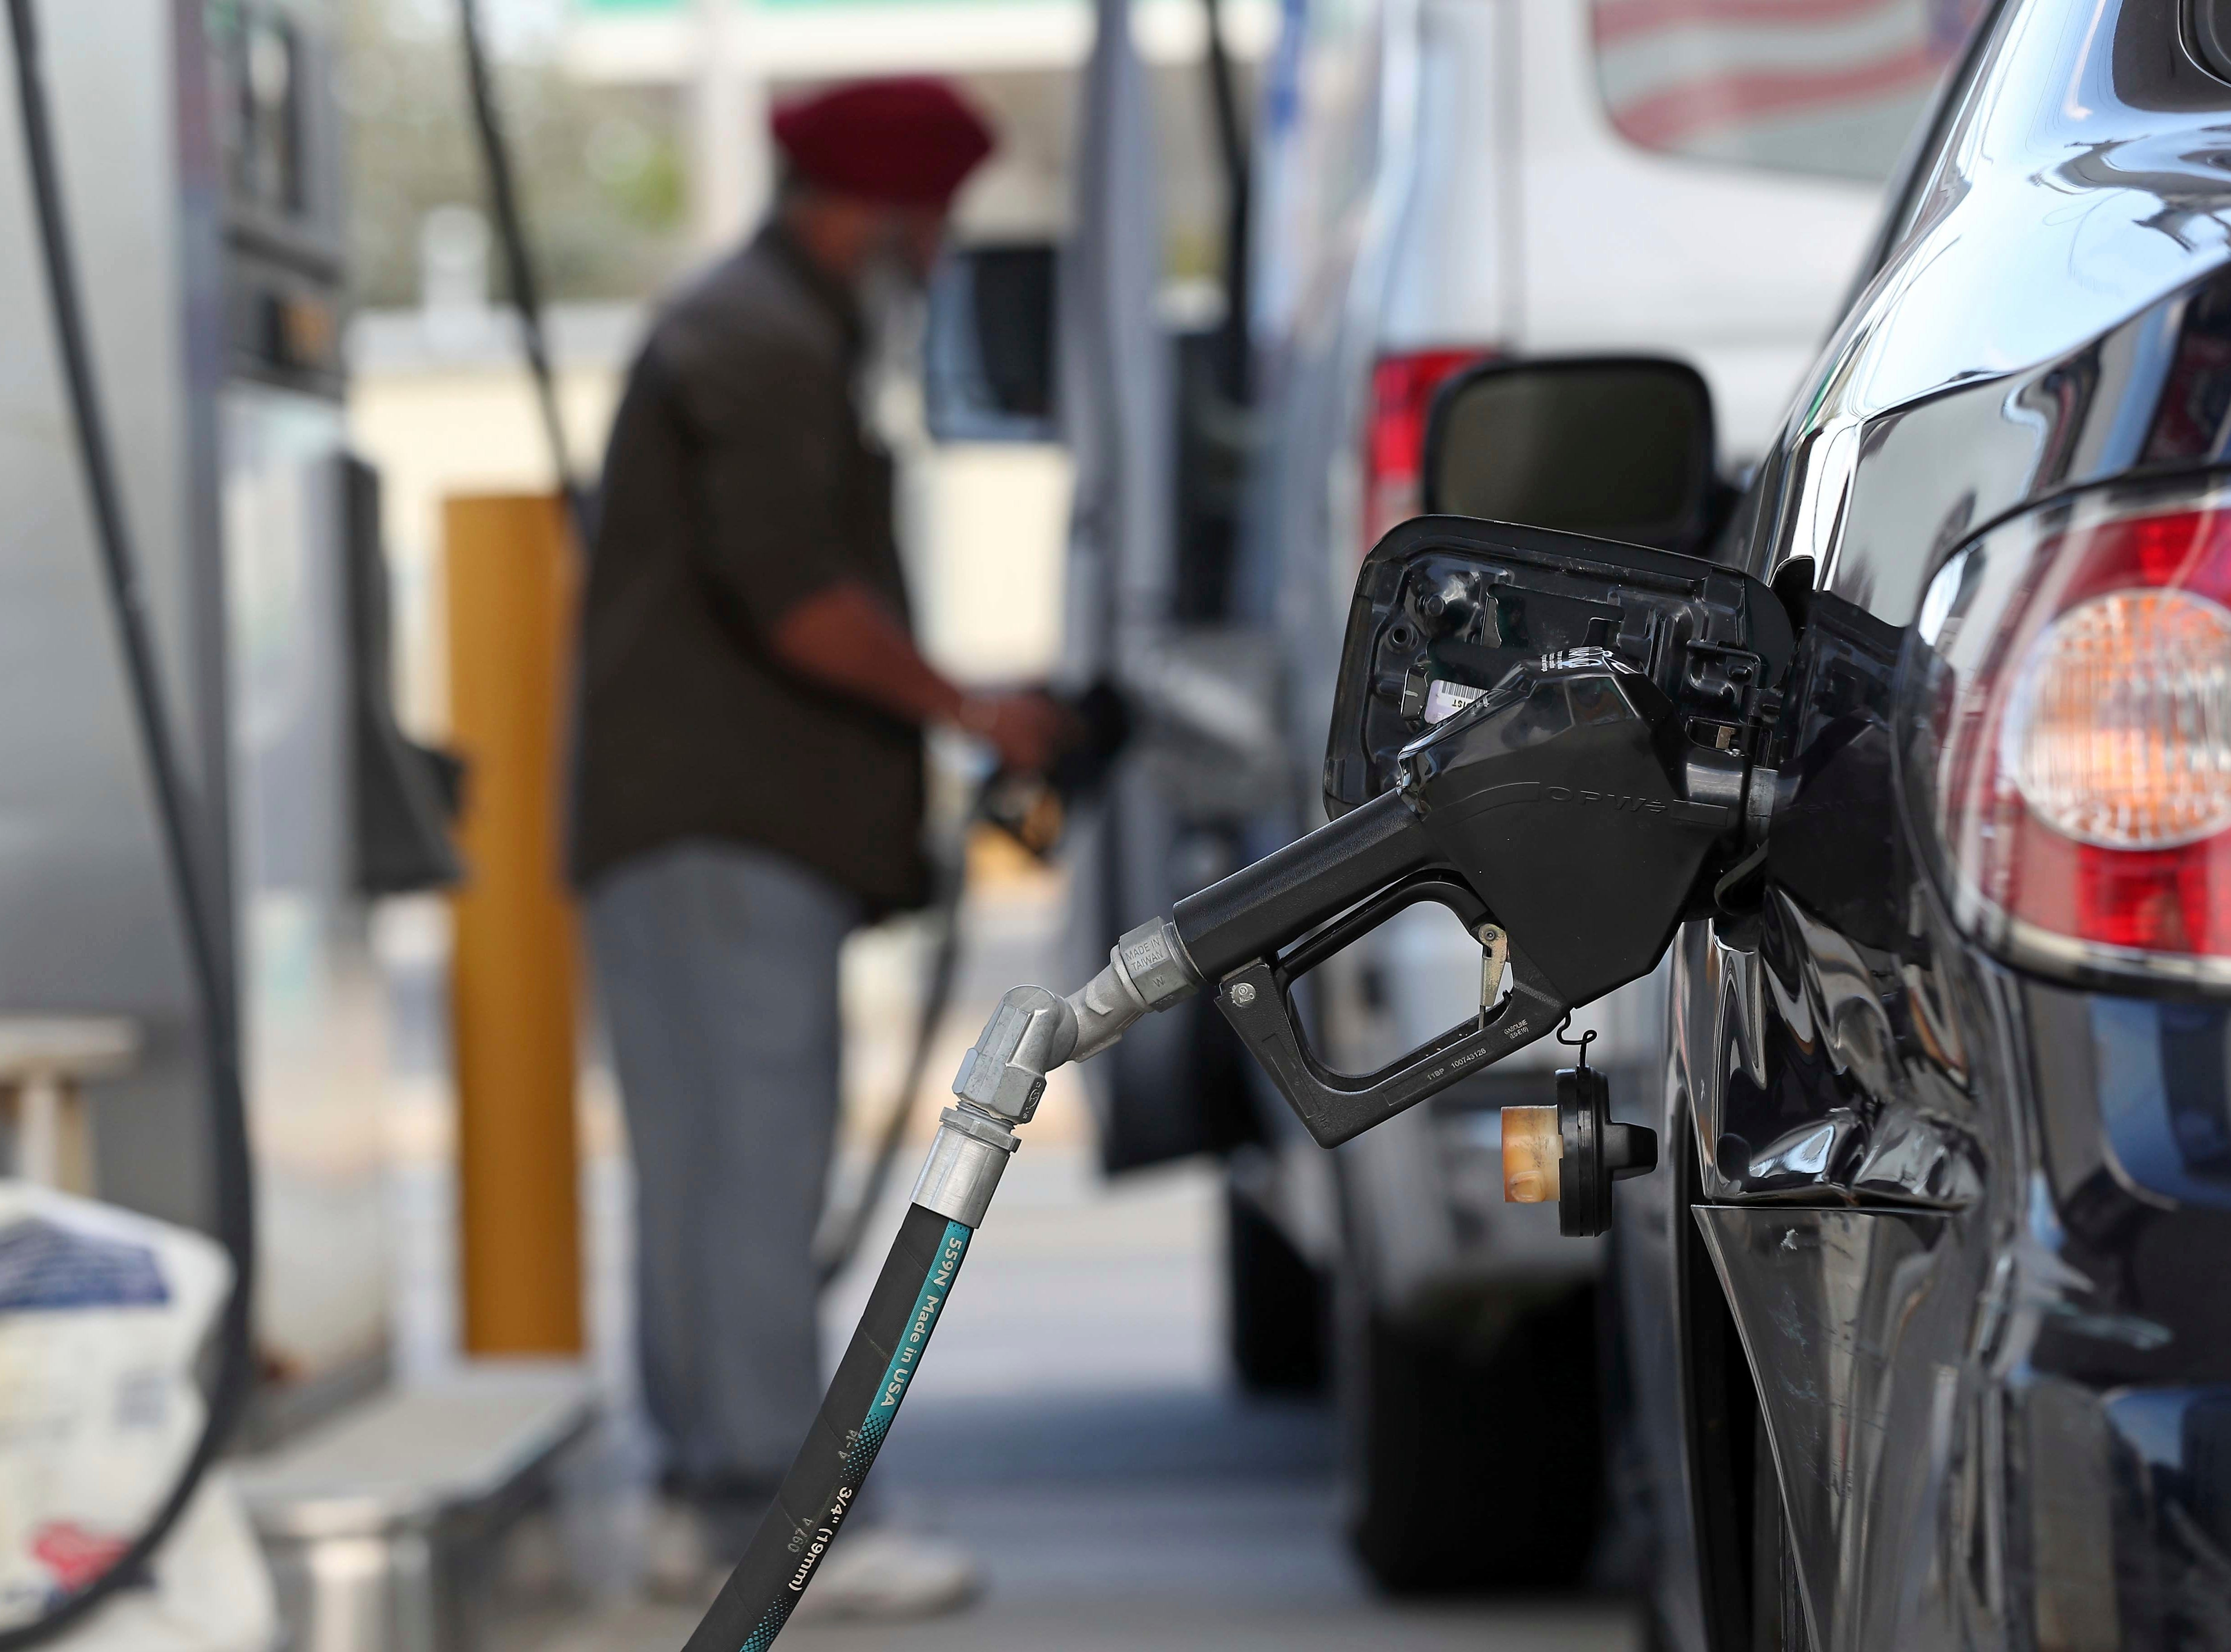 Donald Trump's fuel economy rollback would hurt consumers, climate and innovation